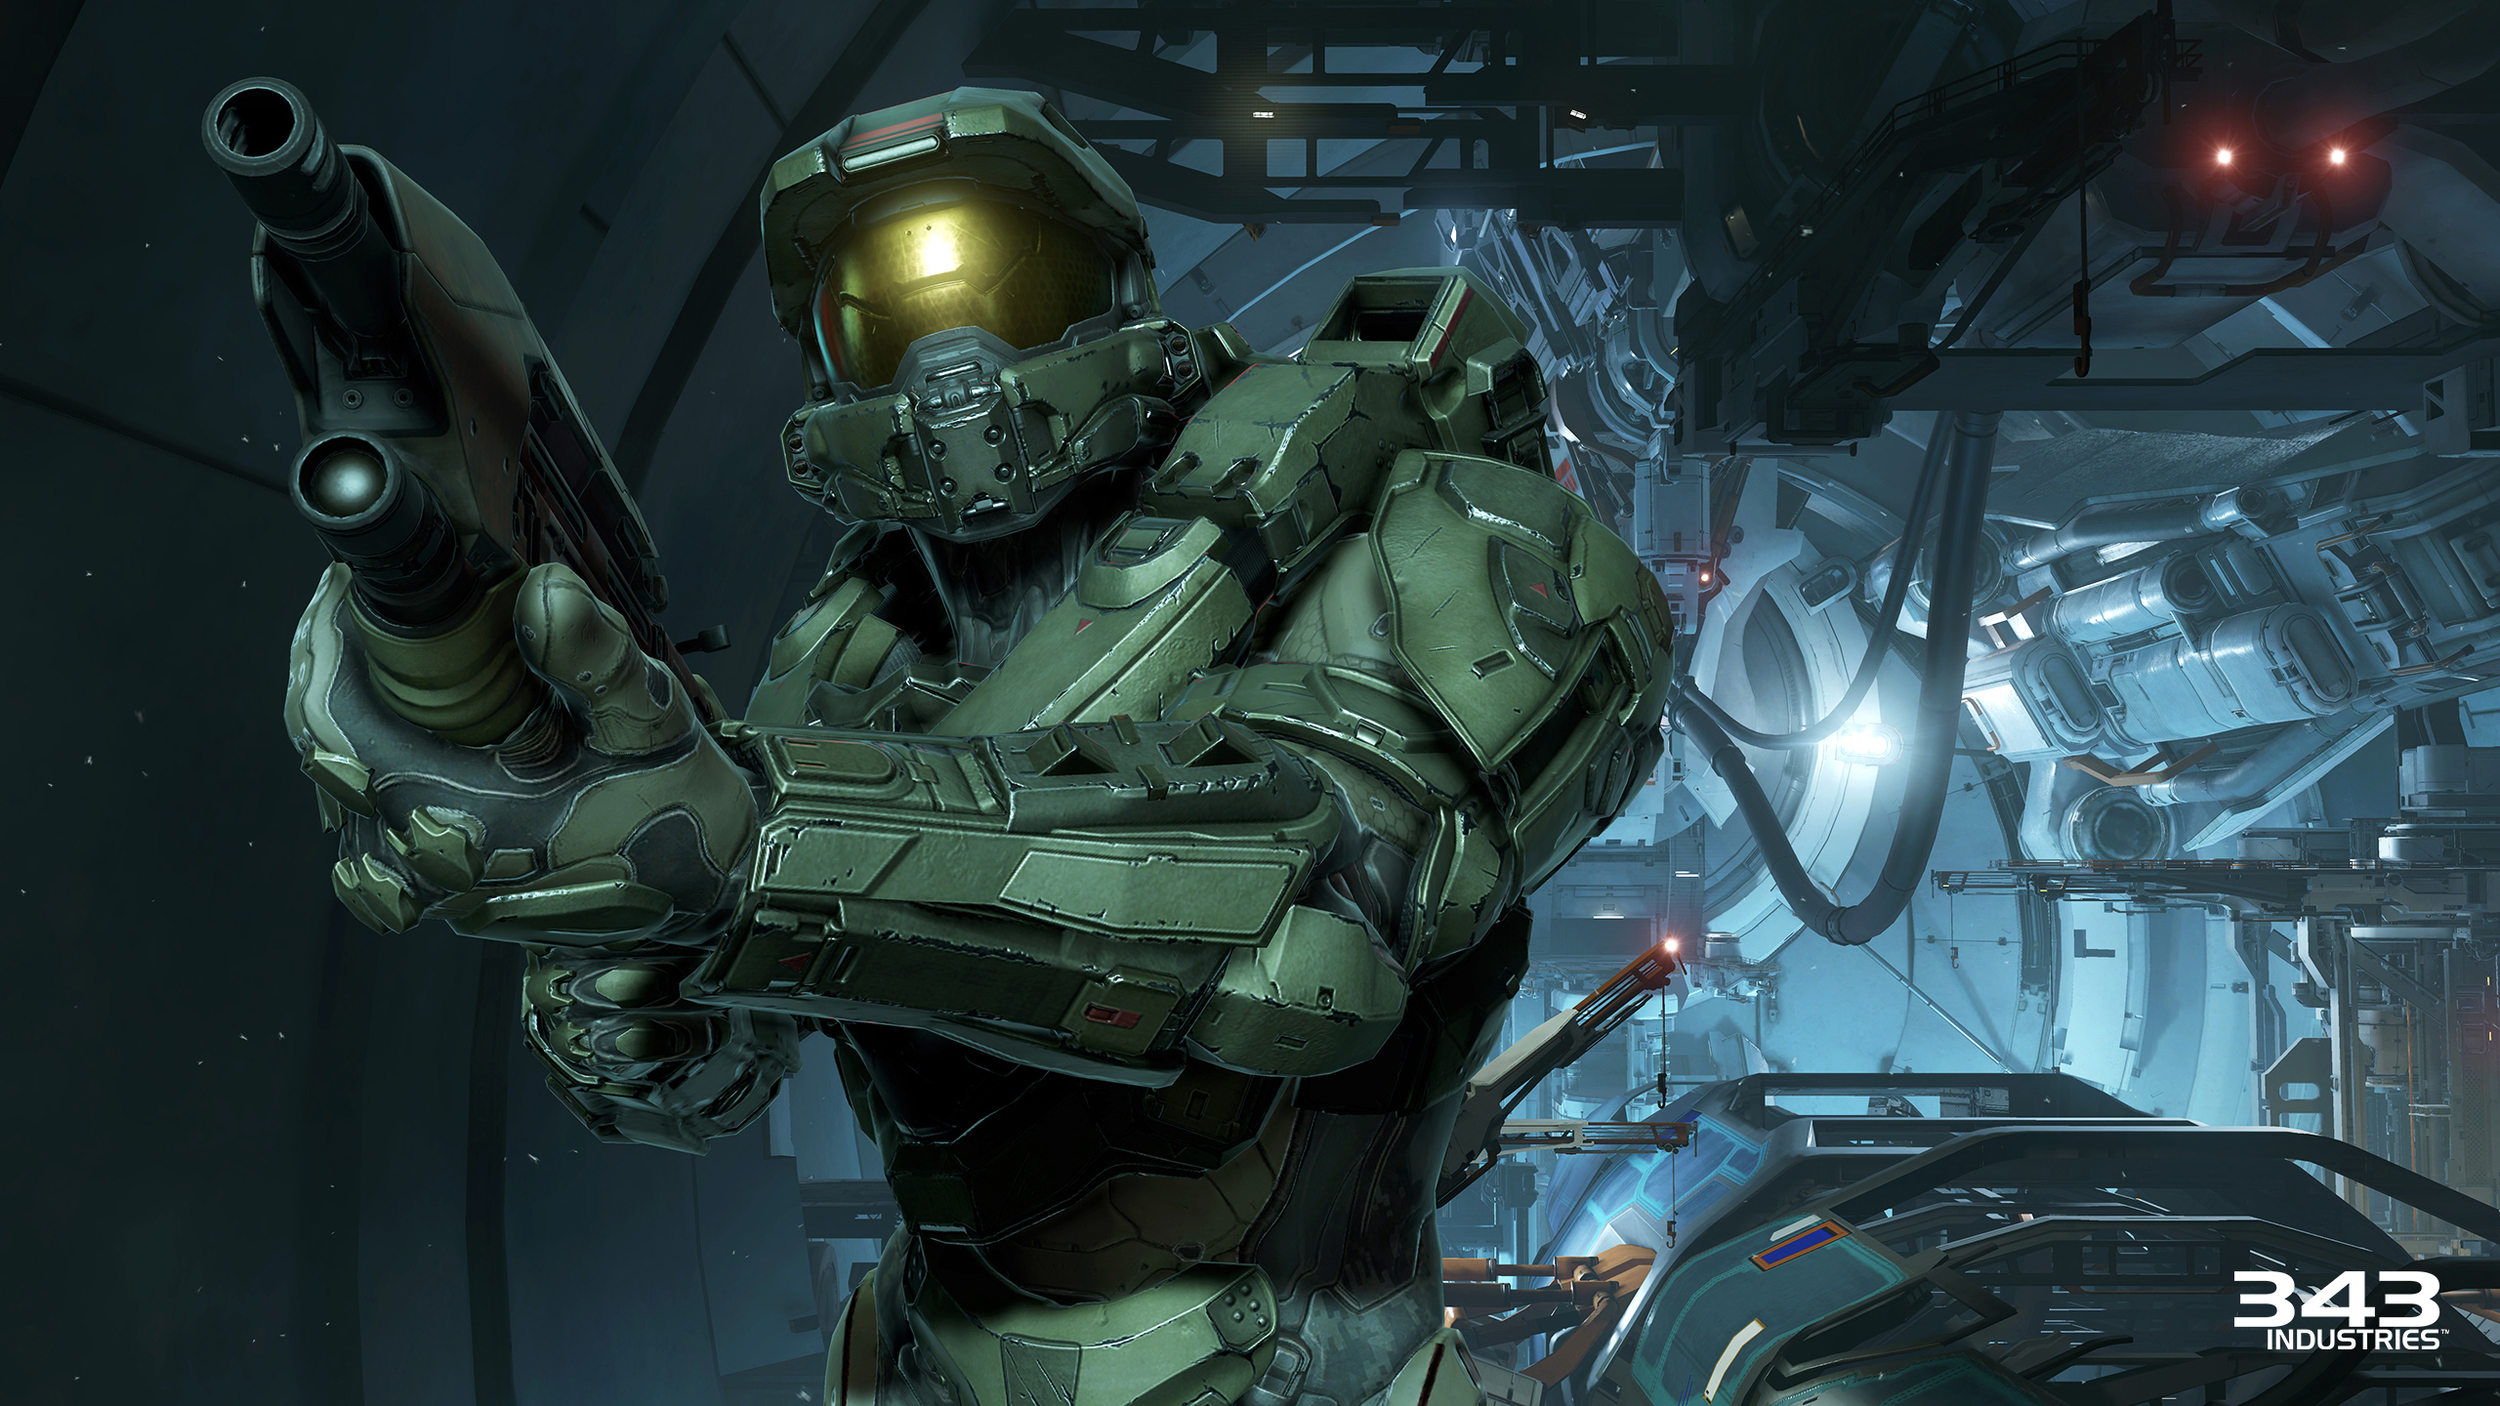 h5-guardians-blue-team-master-chief-hero-core.jpg